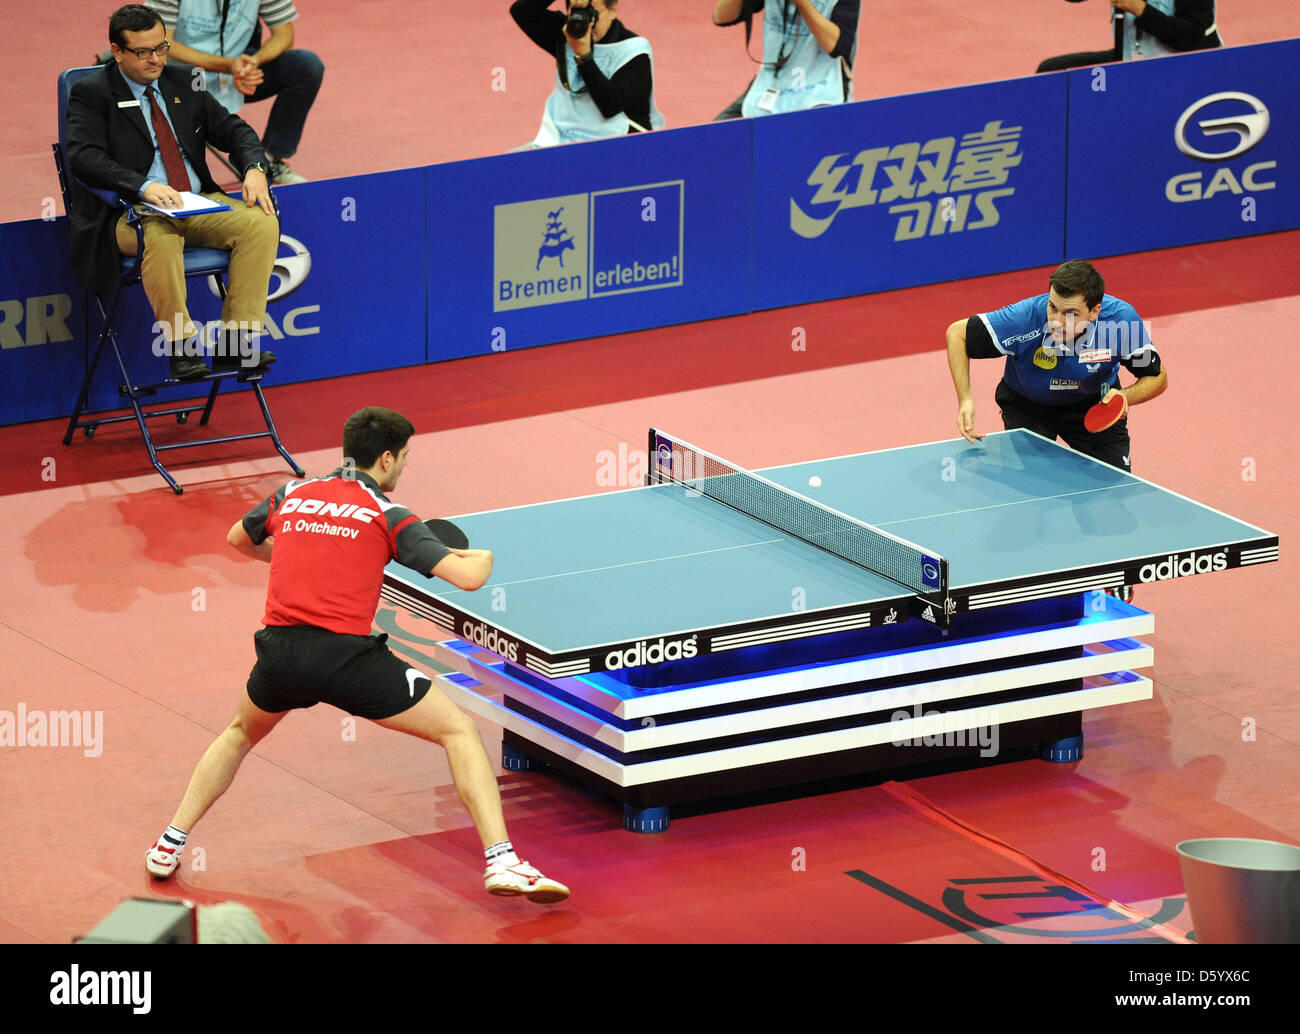 Germans Dimitrji Ovtcharov (L) and Timo Boll during the men's final match of the Table Tennis German Open in - Stock Image